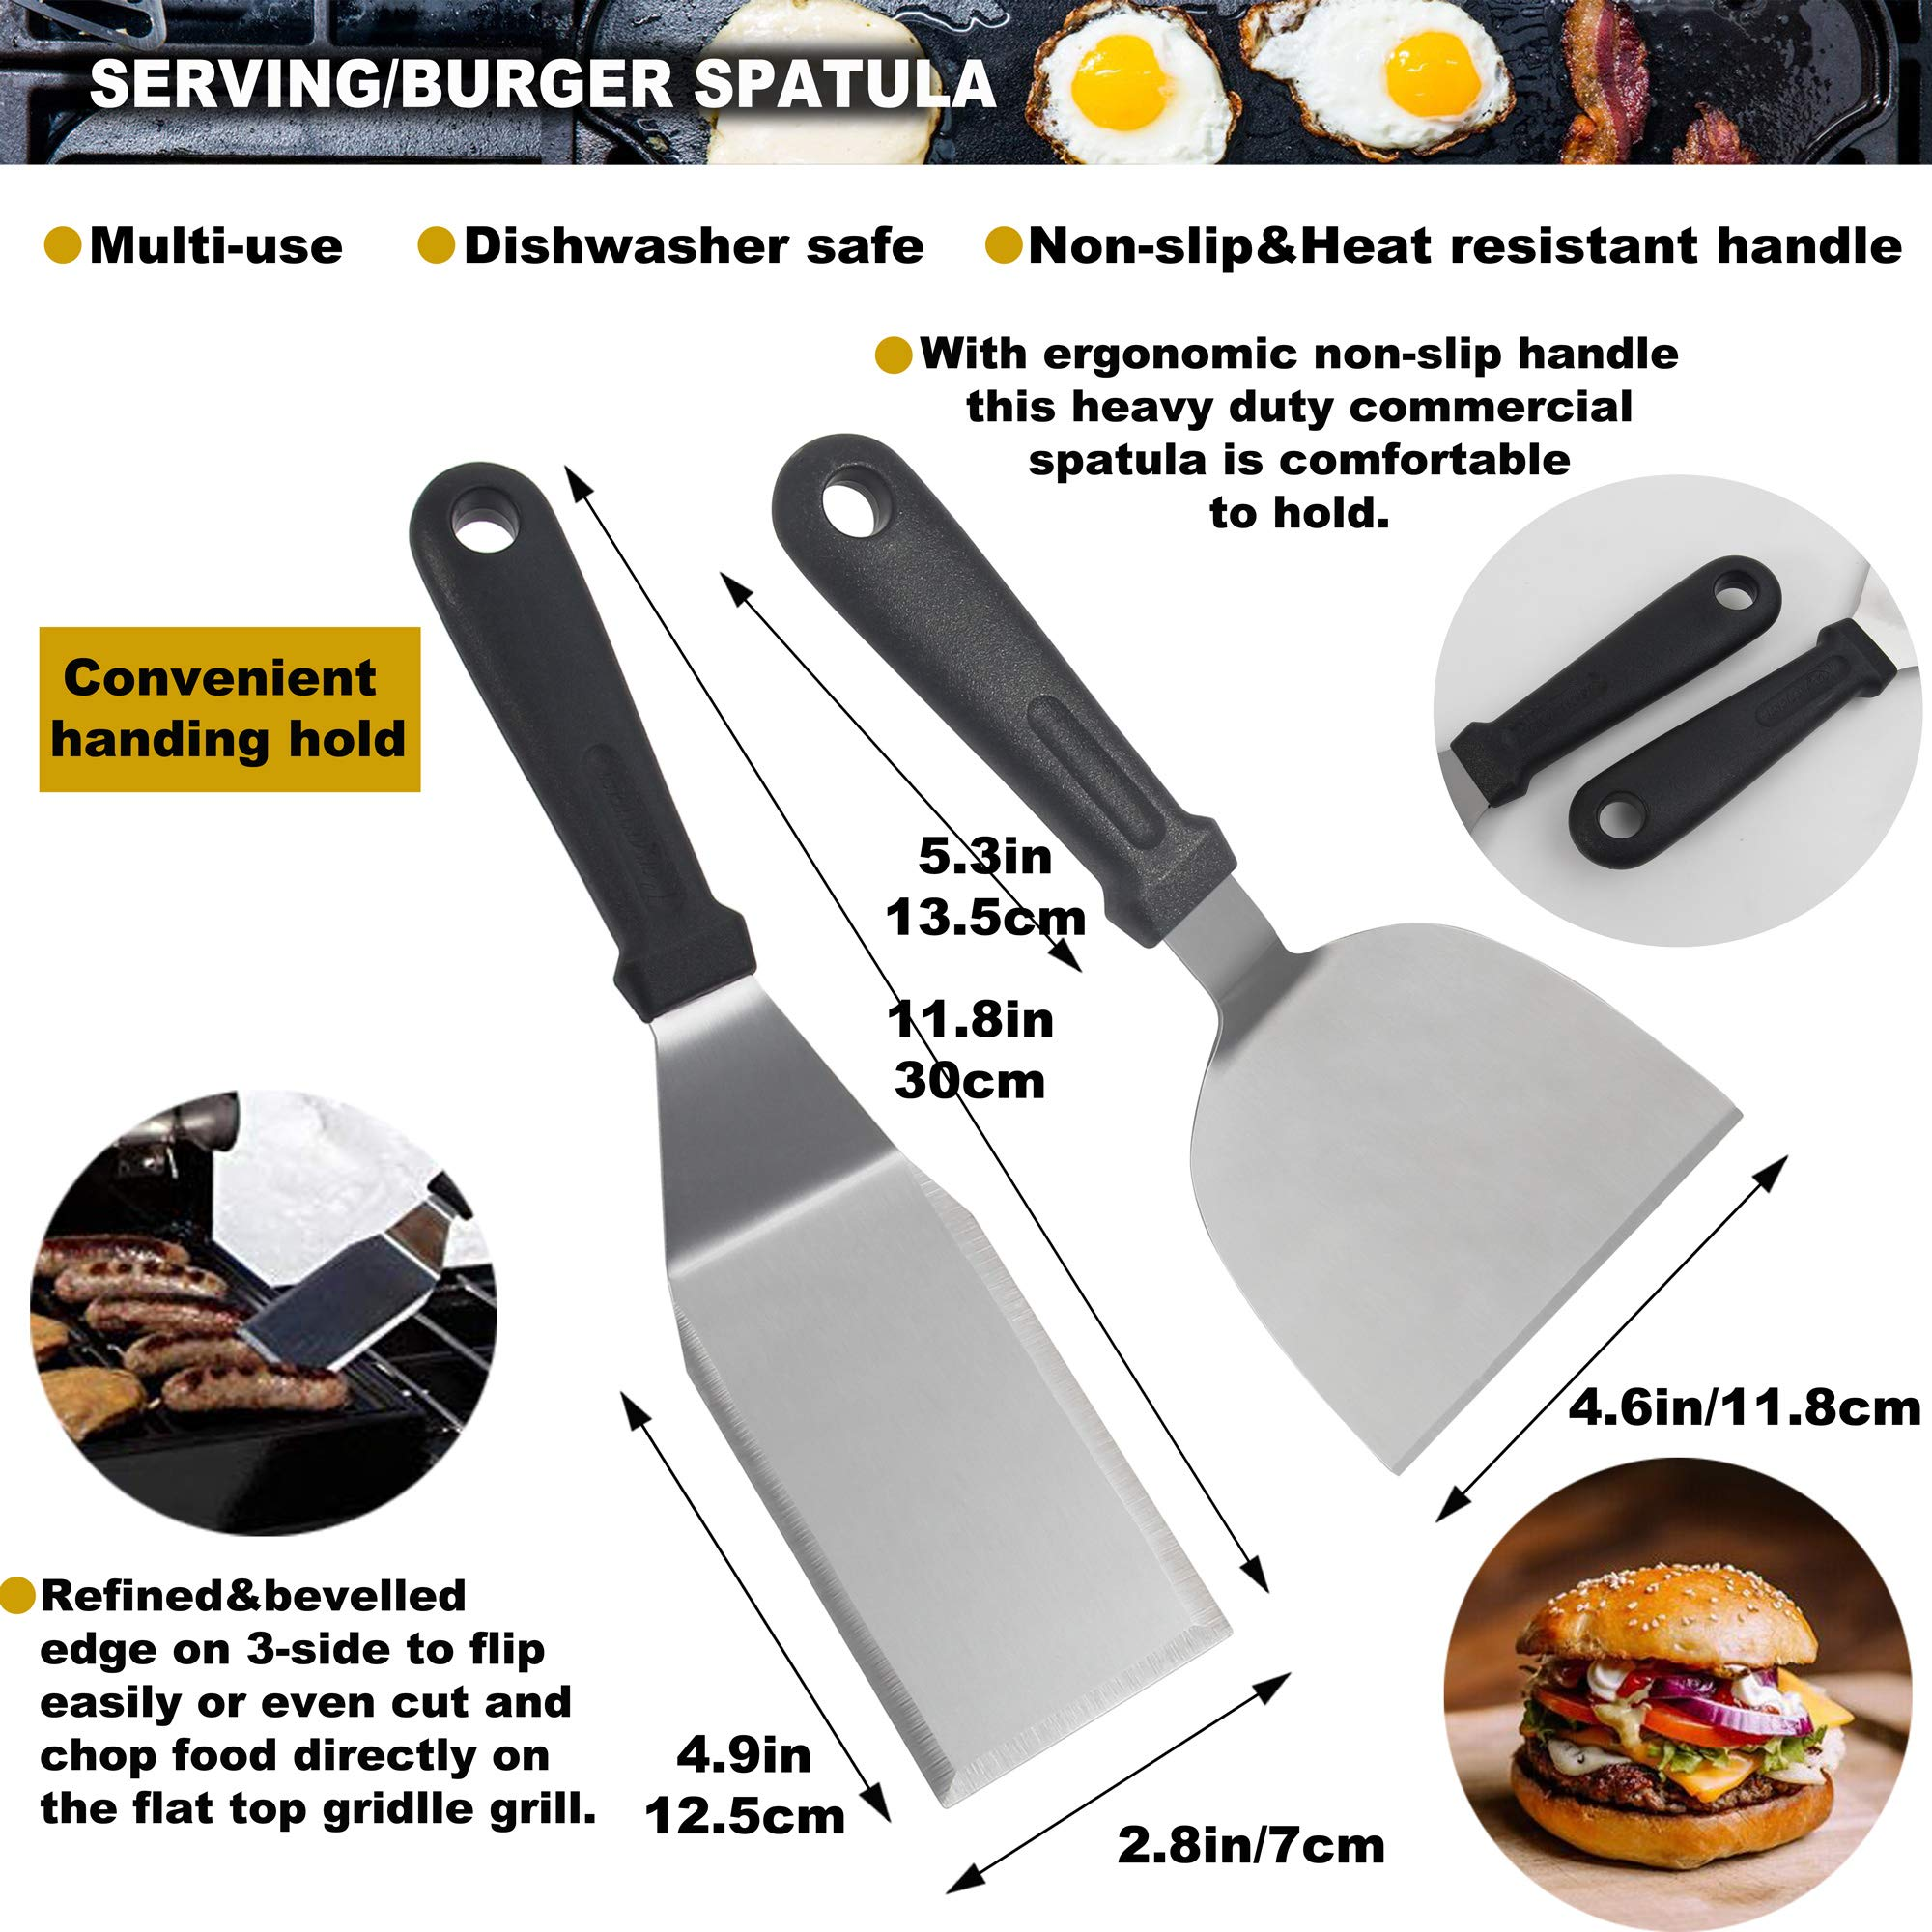 ROMANTICIST 11PC Griddle Accessories Kit with Carrying Bag - Restaurant Grade Griddle Spatula Set for Flat Top Grill Hibachi Cooking - Perfect BBQ Gift for Men Dad on Fathers Day by ROMANTICIST (Image #3)